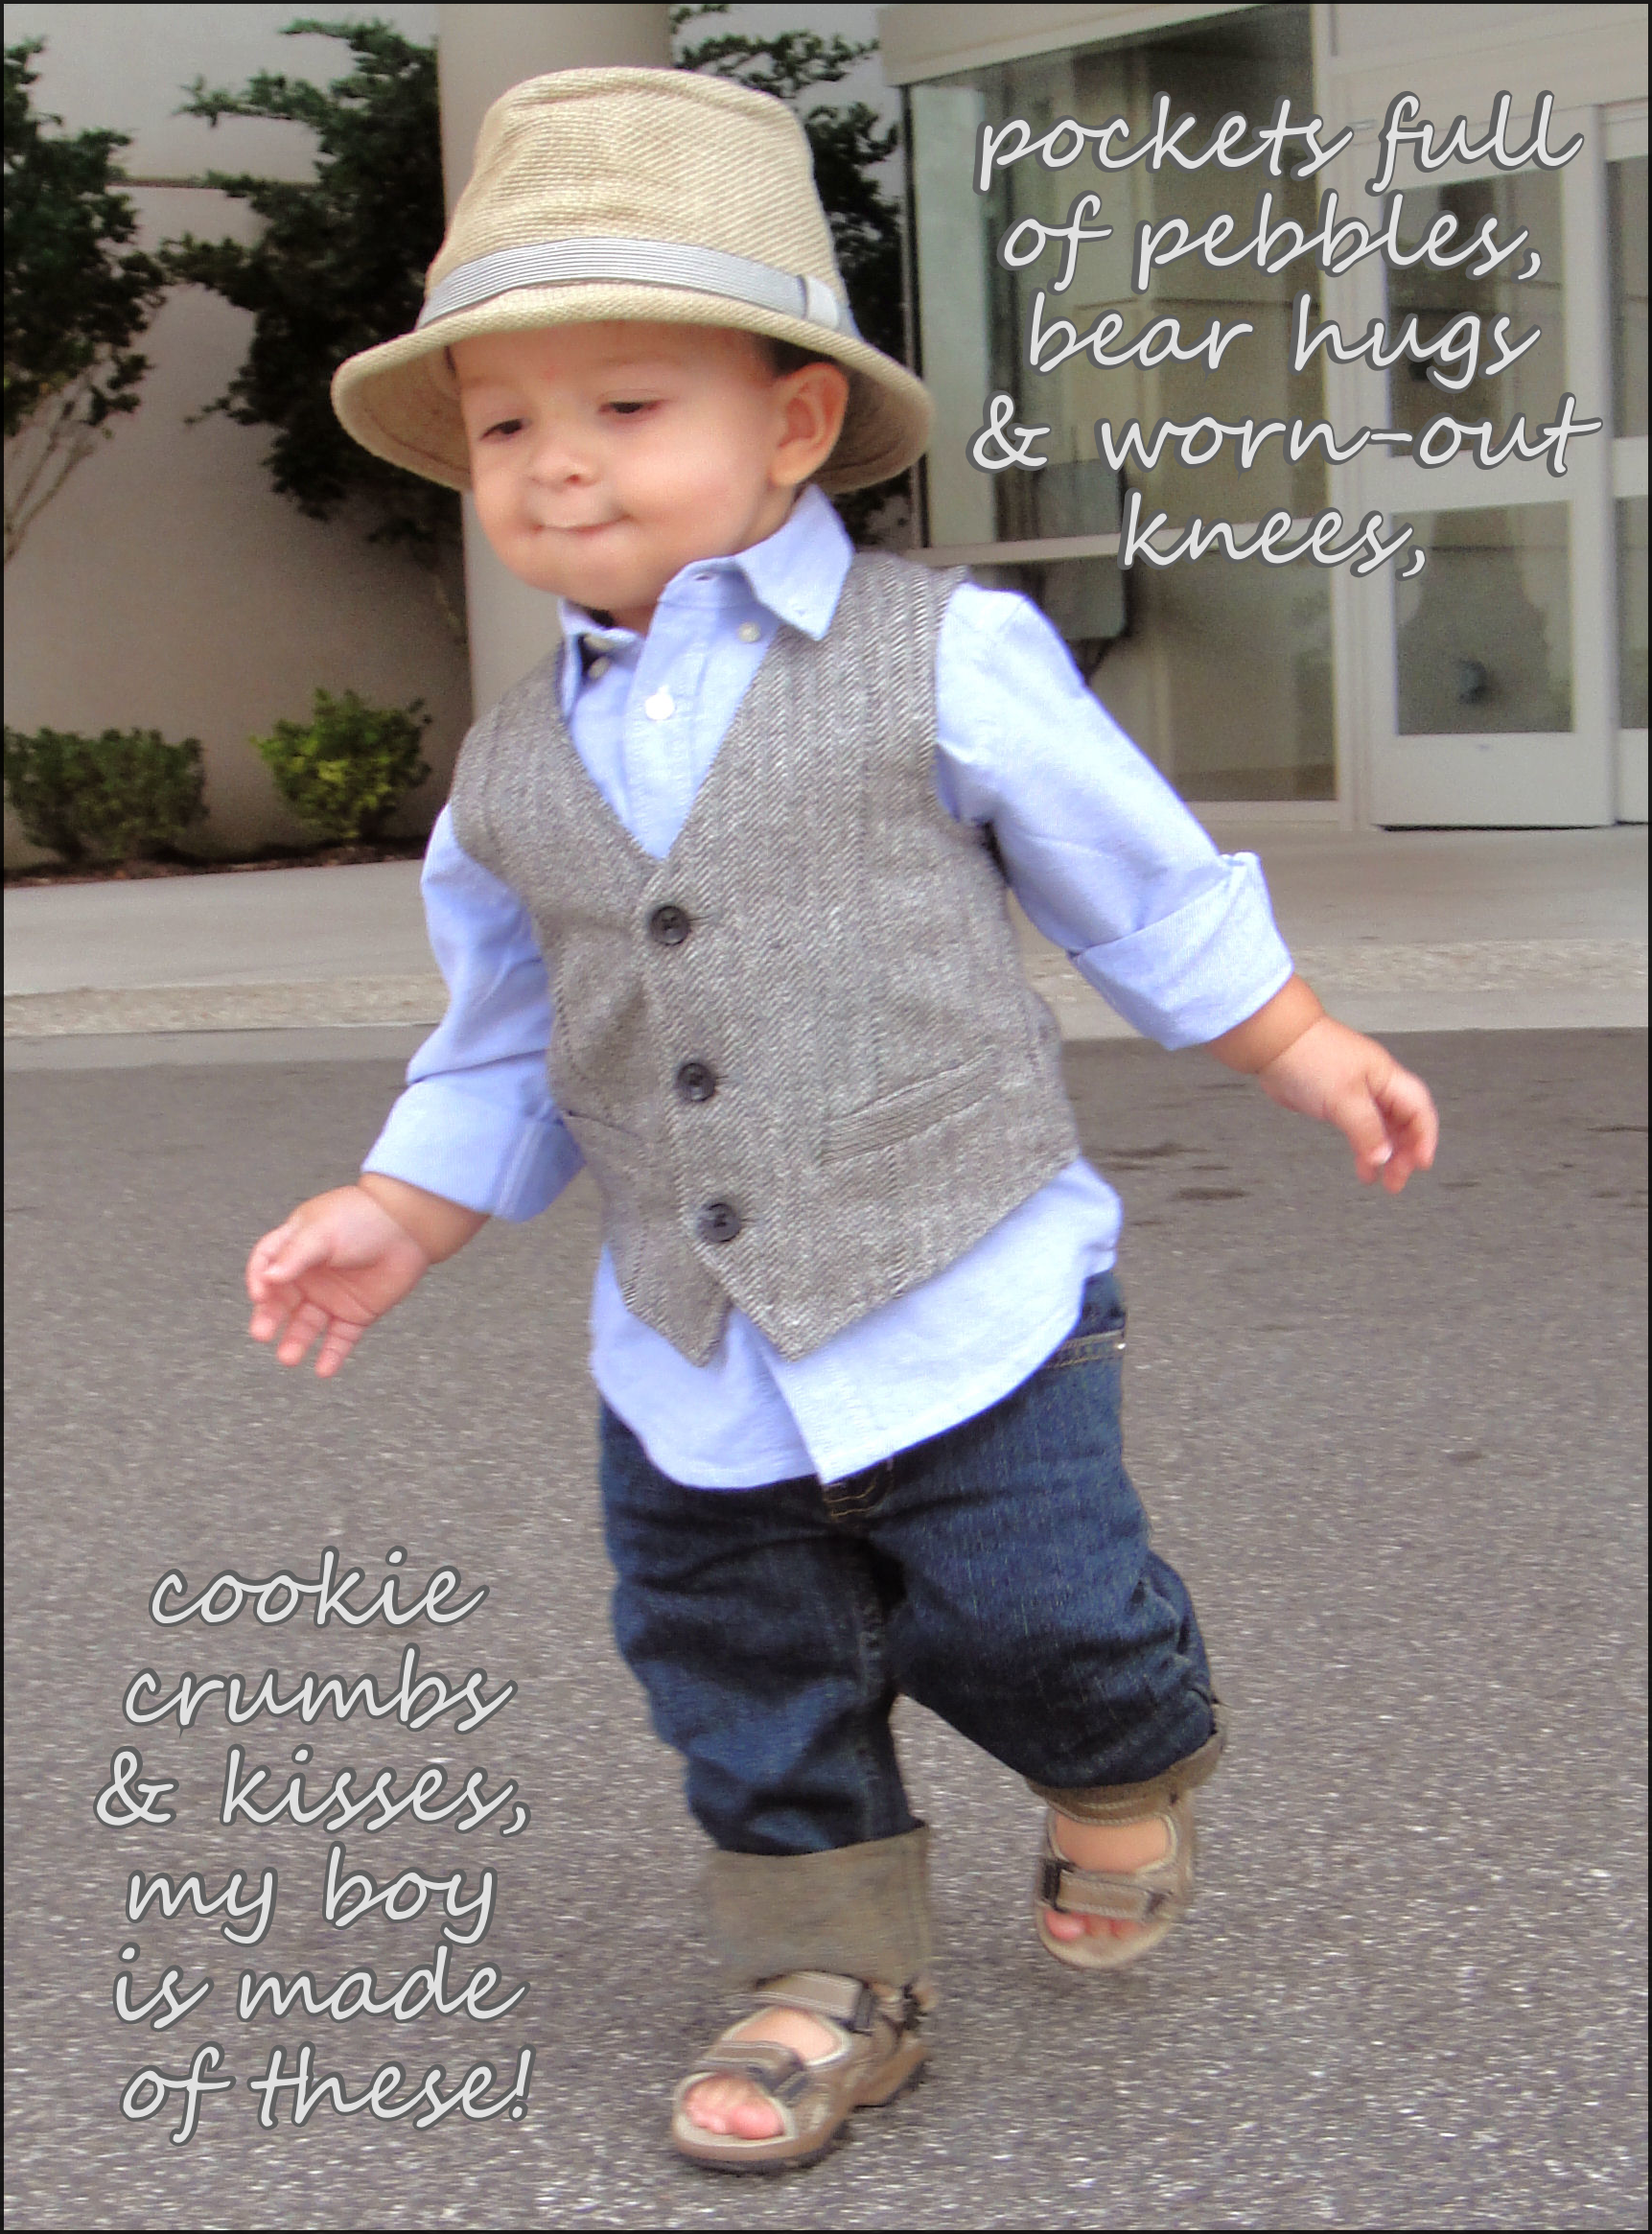 darien son baby boy toddler outfit 1 year old fedora hat ...